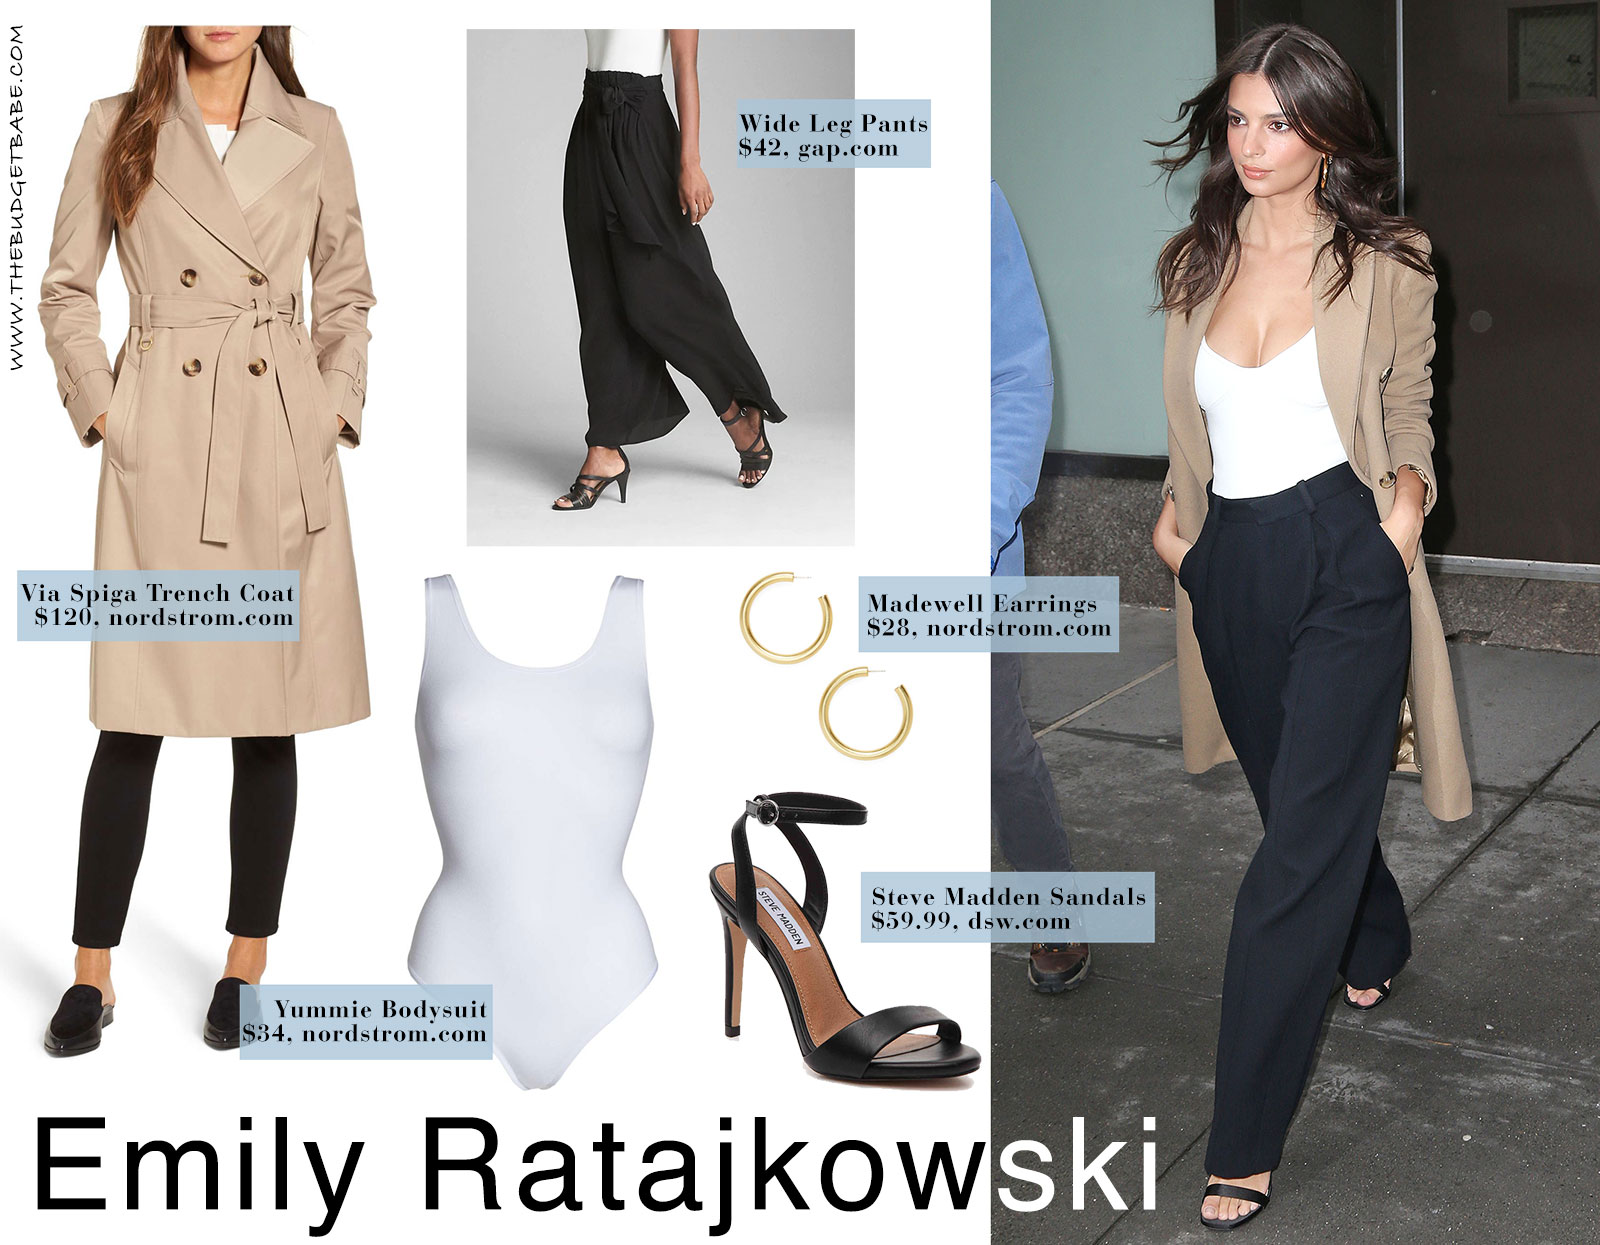 Emily Ratajkowski's white bodysuit, black wide leg pants and trench coat look for less.